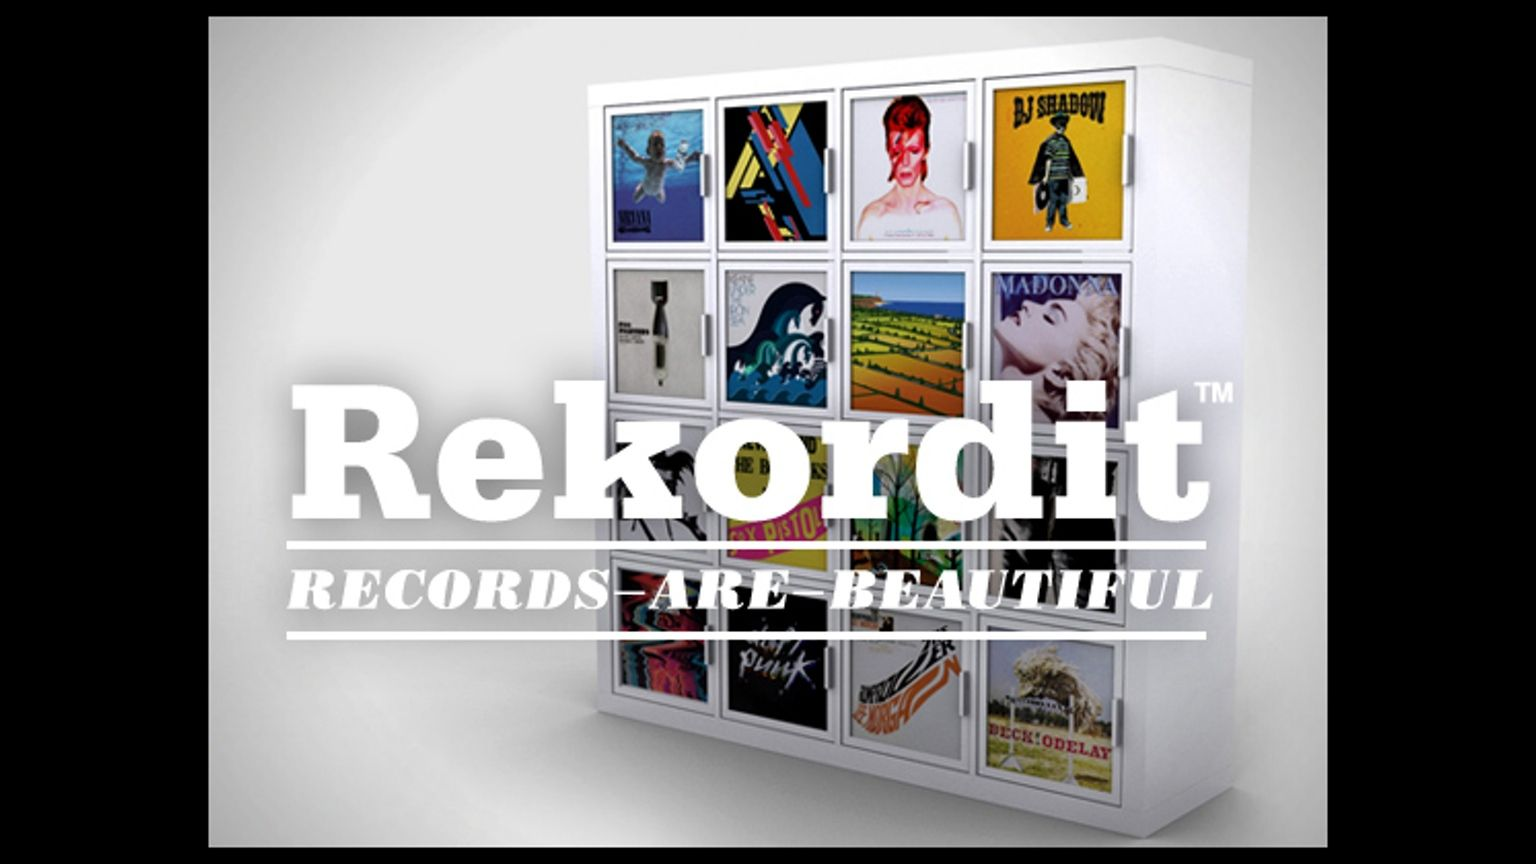 A add on frame for inserting and displaying  record sleeves! Designed to fit the Expedit™ shelving system.